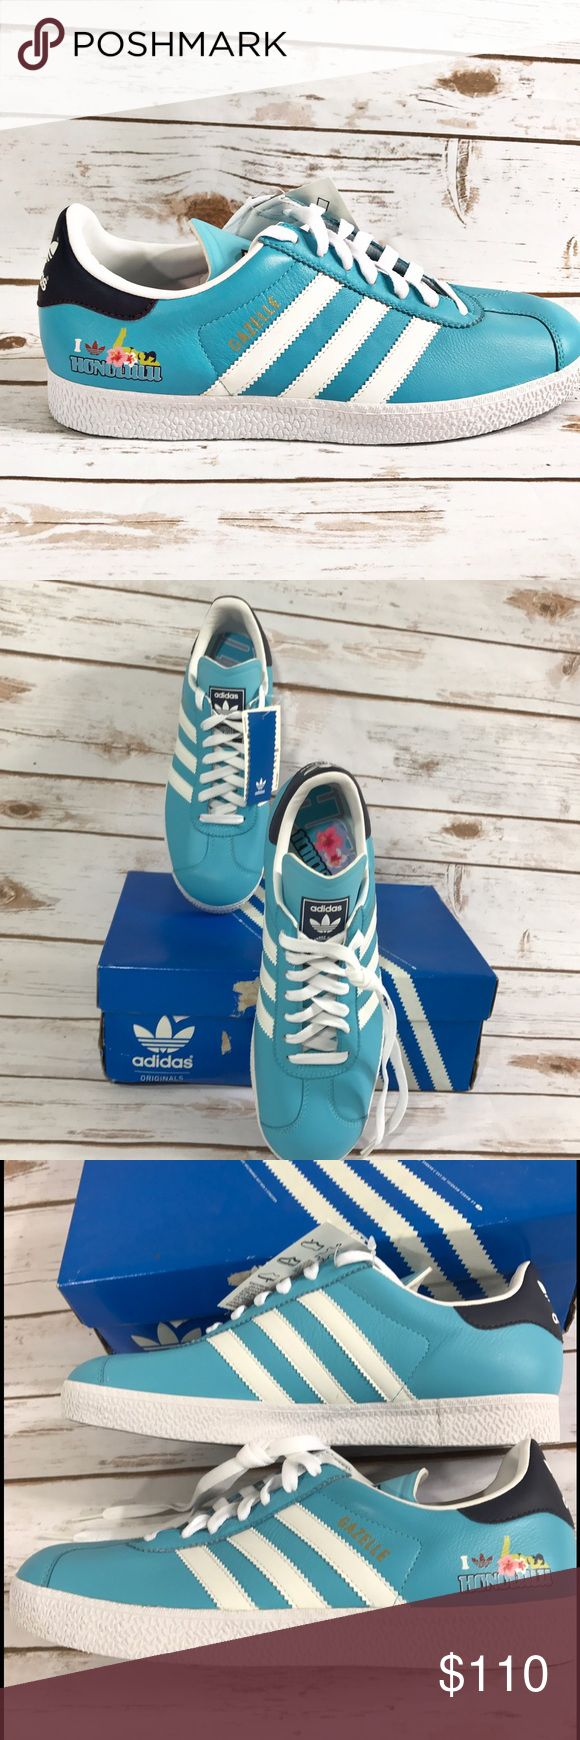 uk to us shoe size conversion adidas adidas gazelle og blue sale